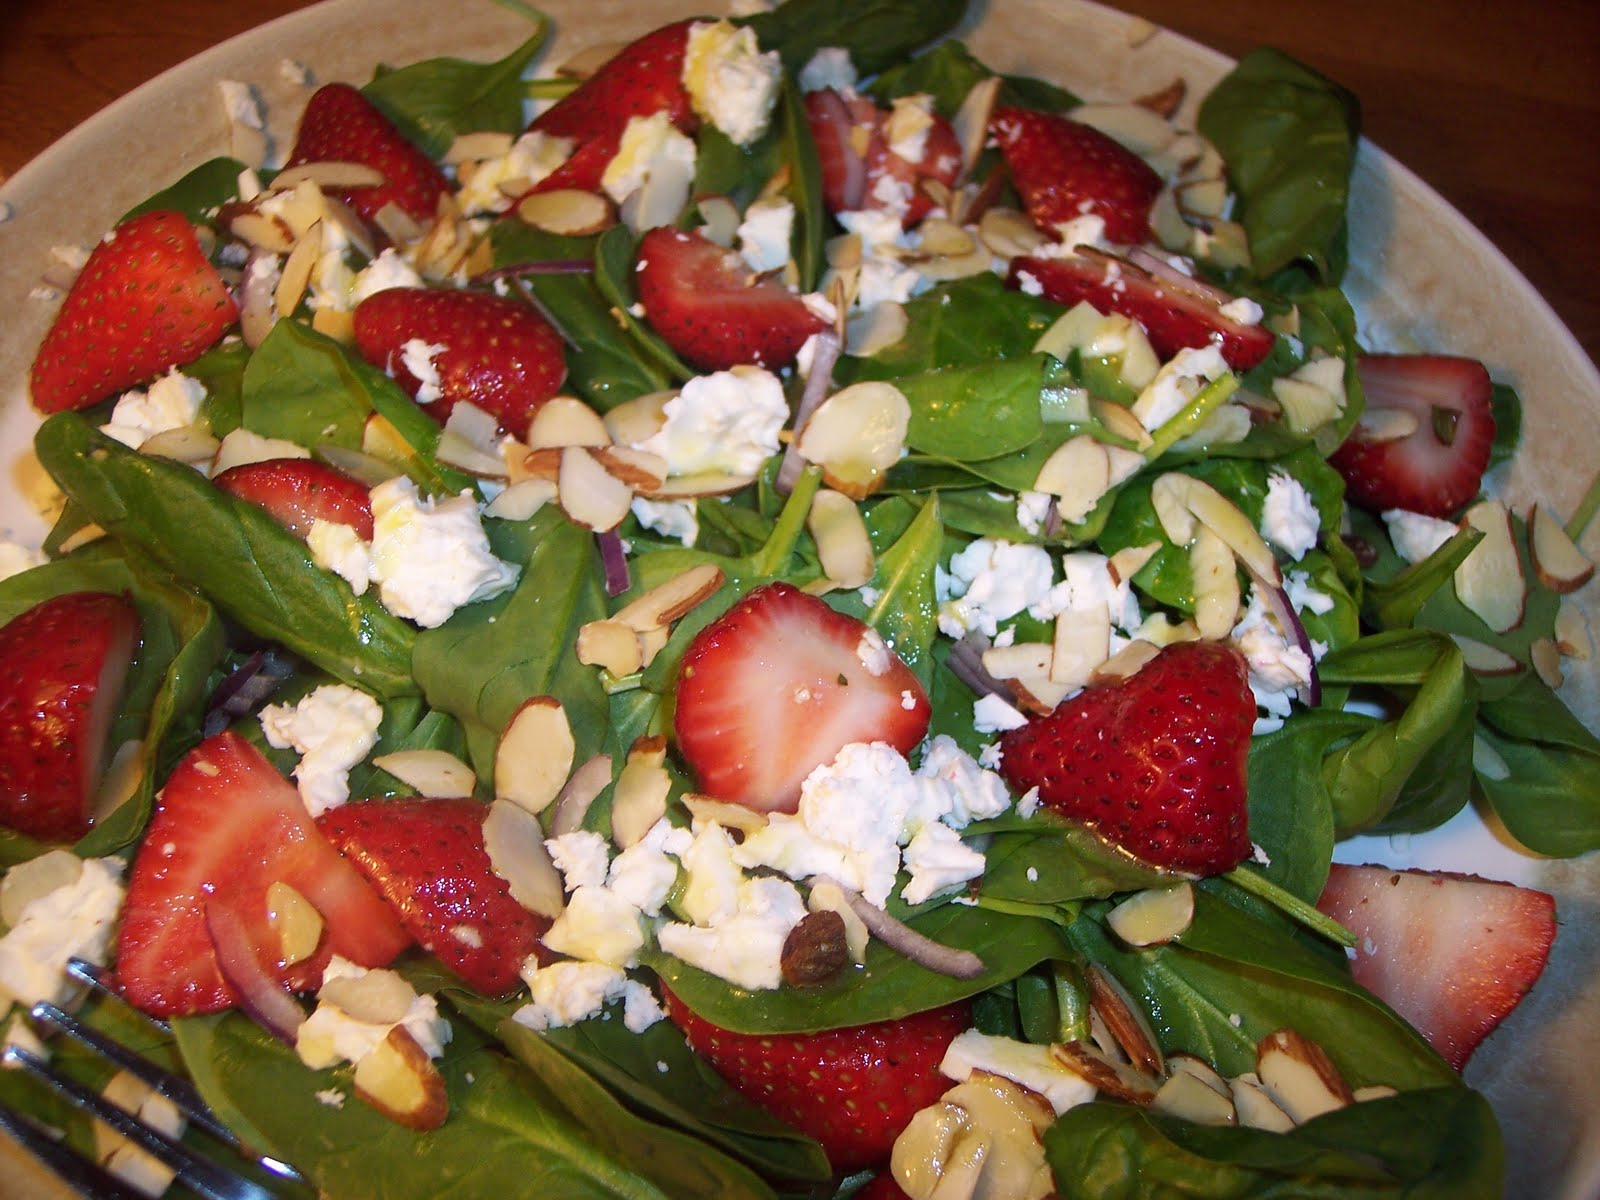 Savory Moments: Spinach, strawberry, and feta salad